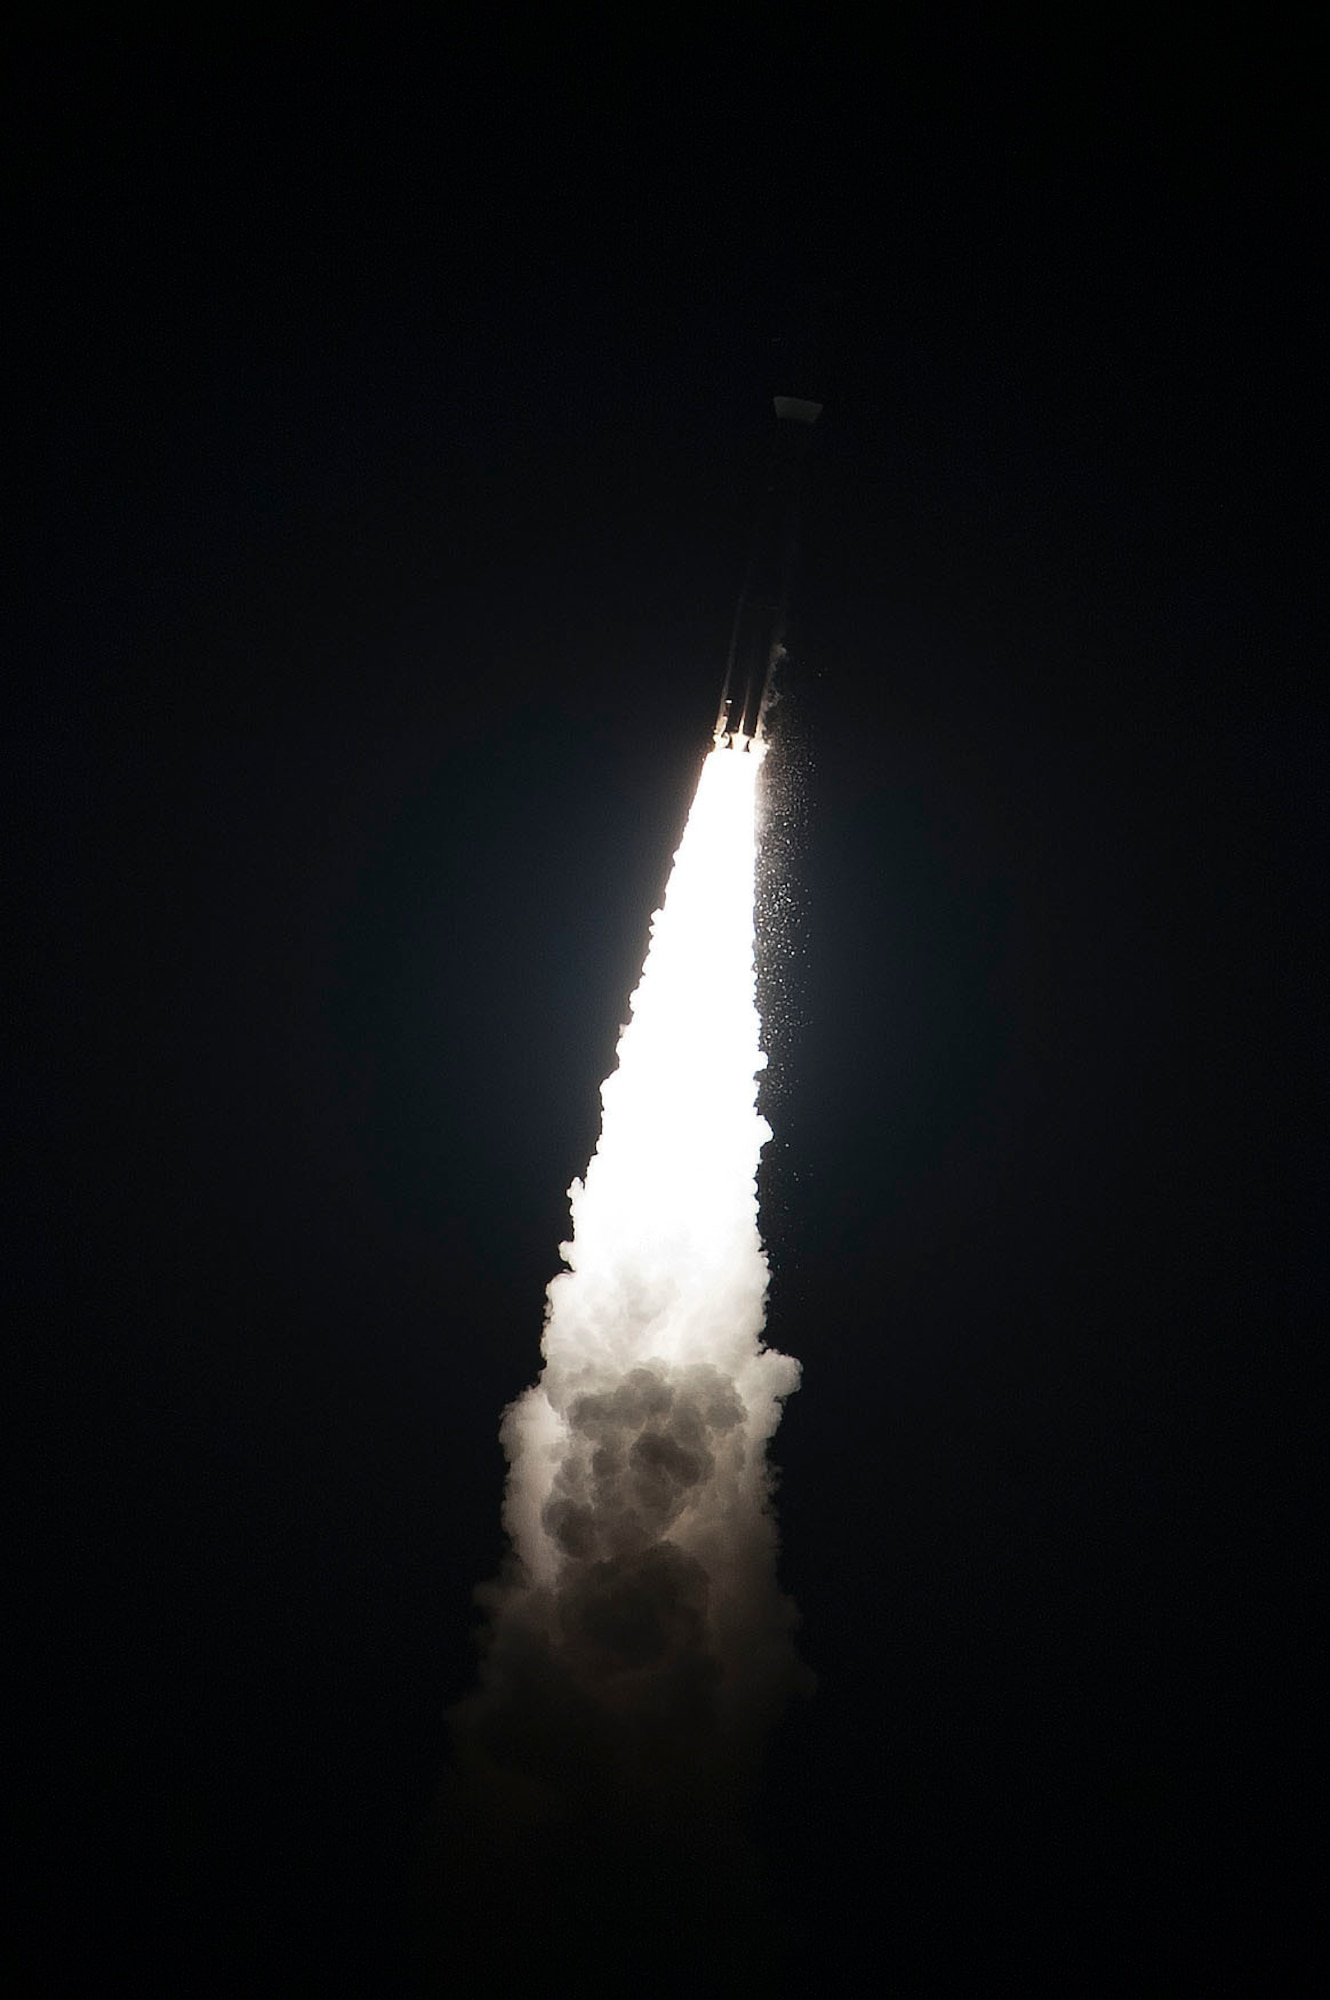 An Atlas V rocket carries the Fifth Advanced Extremely High Frequency satellite toward space Aug. 8, 2019, after being launched from Cape Canaveral Air Force Station, Fla. In April, Airmen assigned to Travis Air Force Base, California, transported the satellite to Florida. The satellite will provide enhanced communications for high-priority military assets. (U.S. Air Force photo by Taylor Nave)